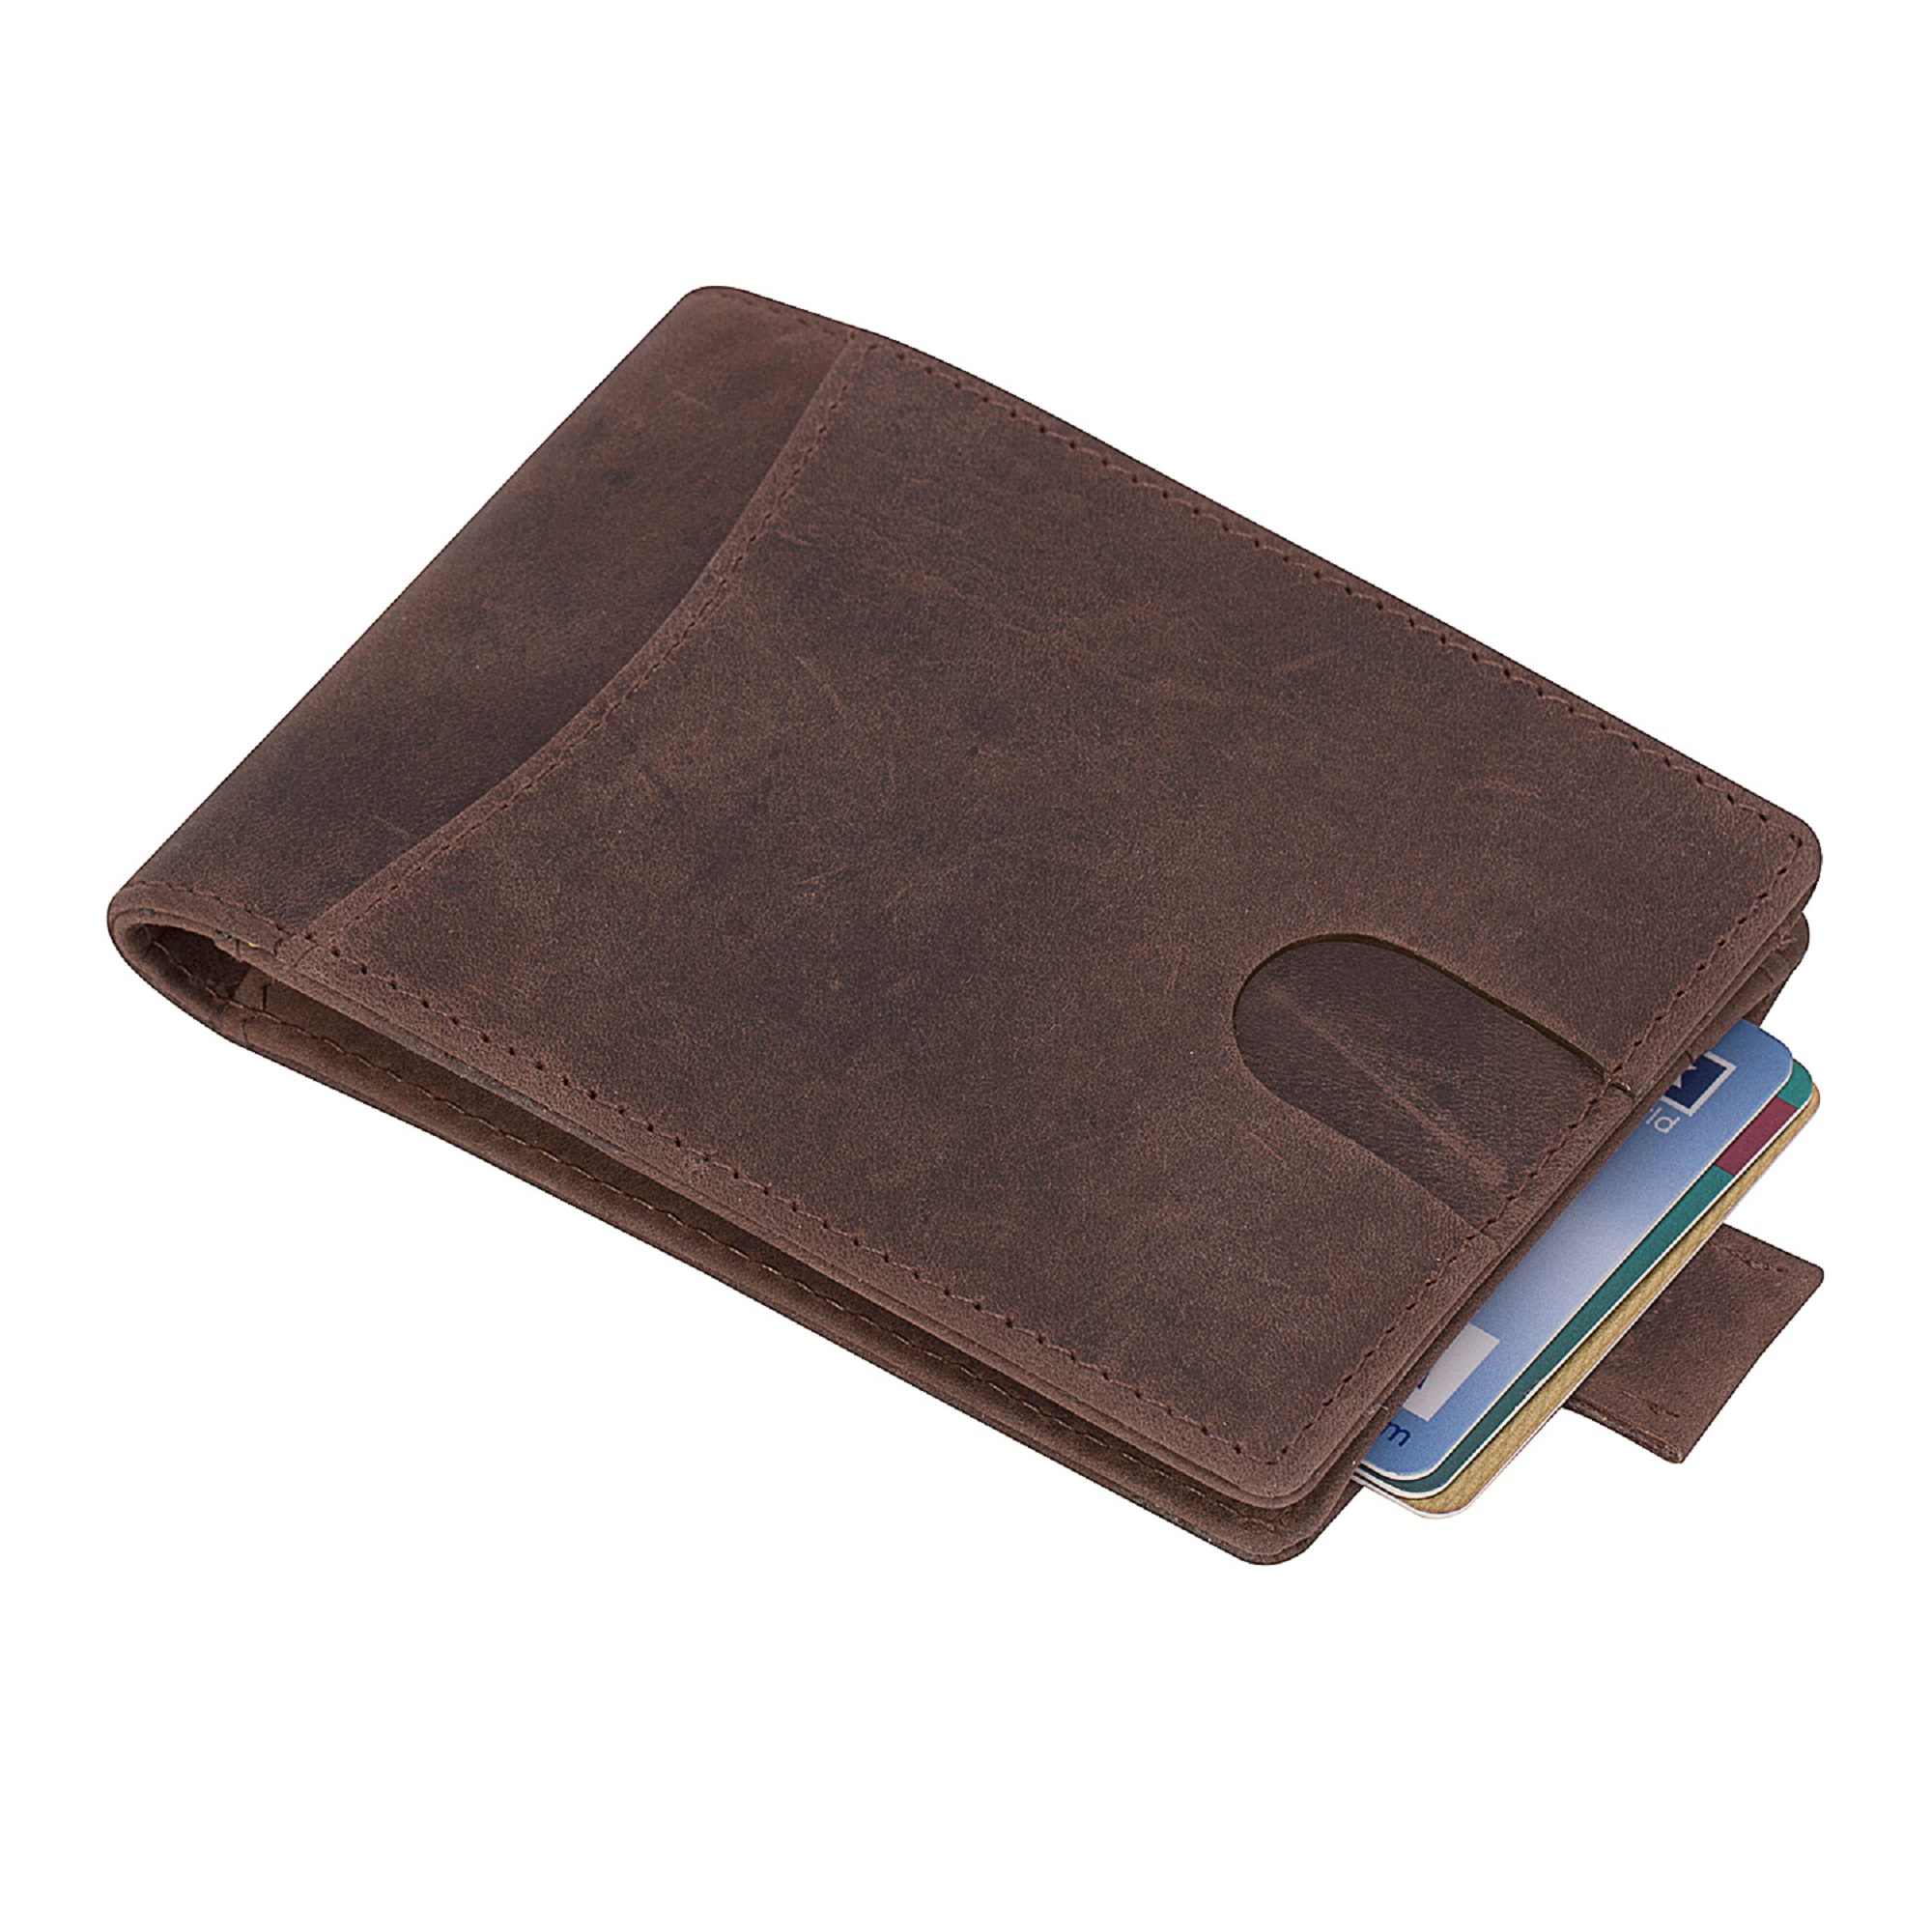 Leather Money Clip Wallet Manufacturers In Turin, Money Clip Wallet Suppliers In Turin, Money Clip Wallet Wholesalers In Turin, Money Clip Wallet Traders In Turin